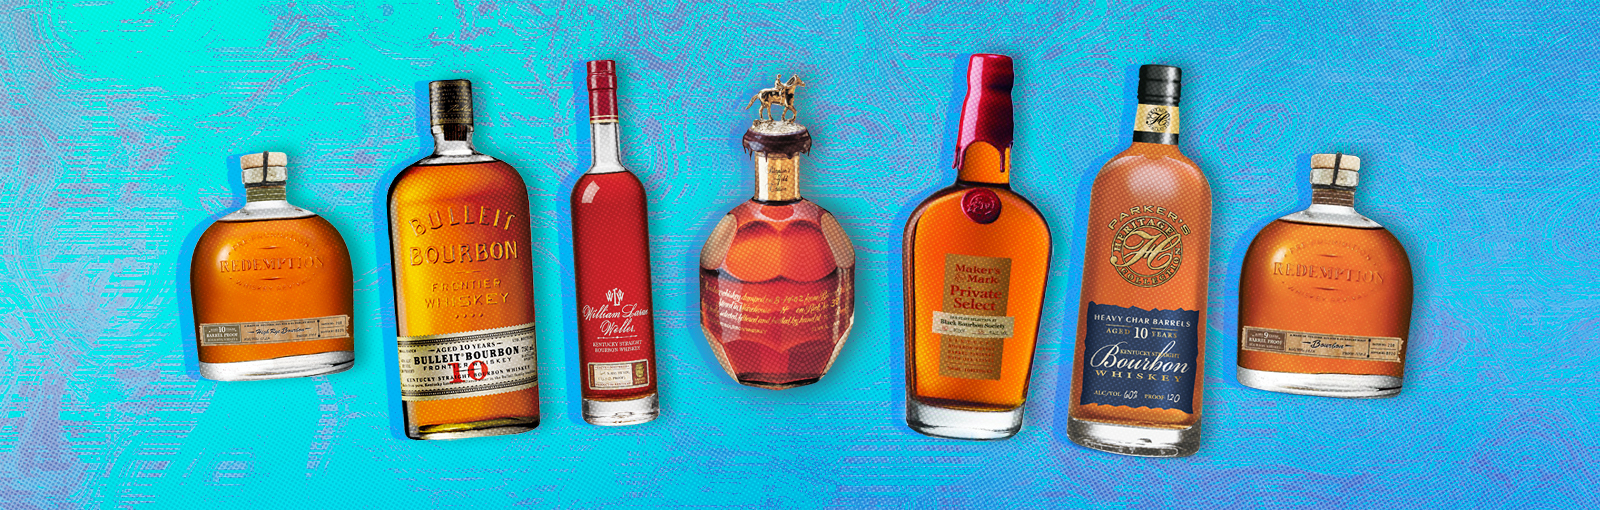 The International Wine & Spirits Competition Named The Best American Whiskeys, Just In Time For July 4th